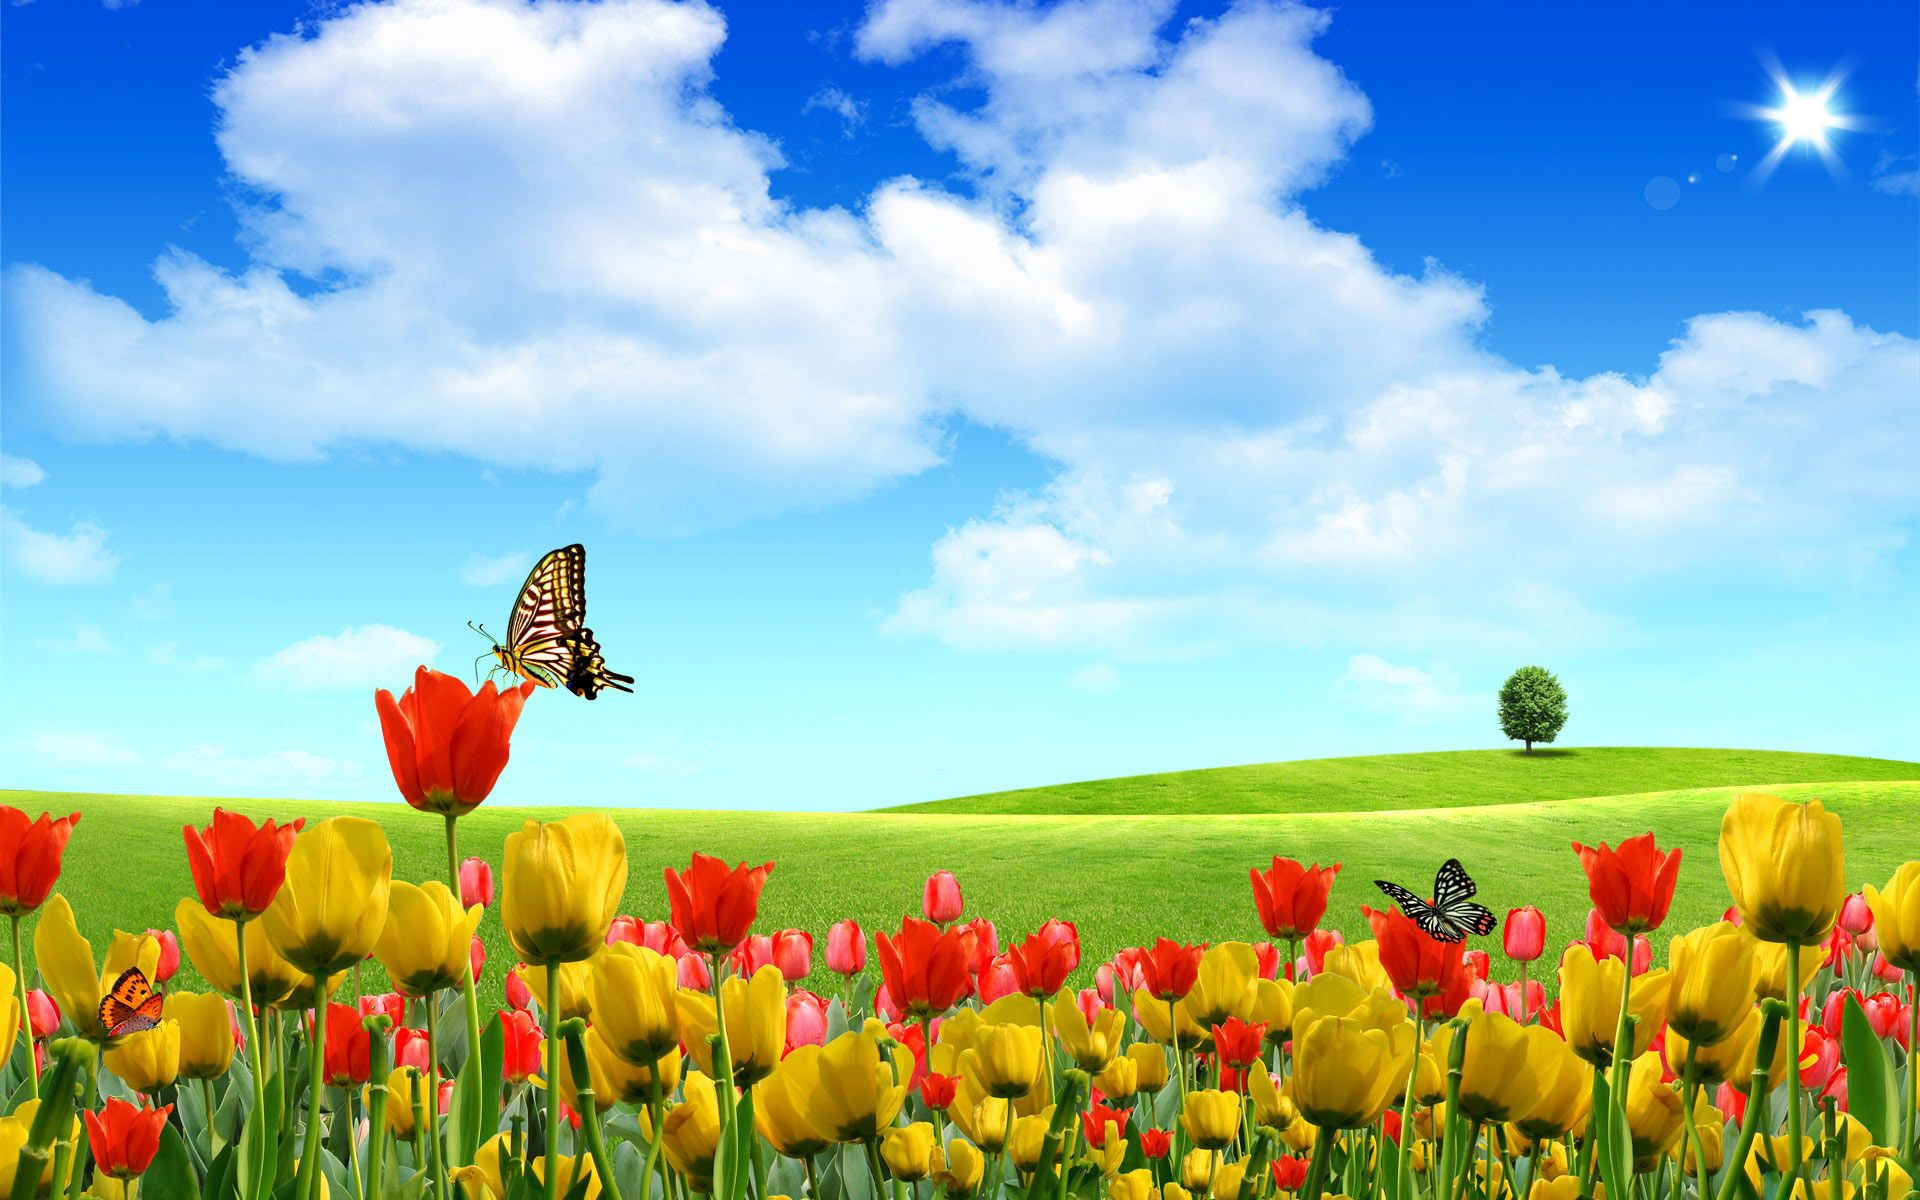 free scenery wallpaper includes beautiful buds boasting of its natural scene